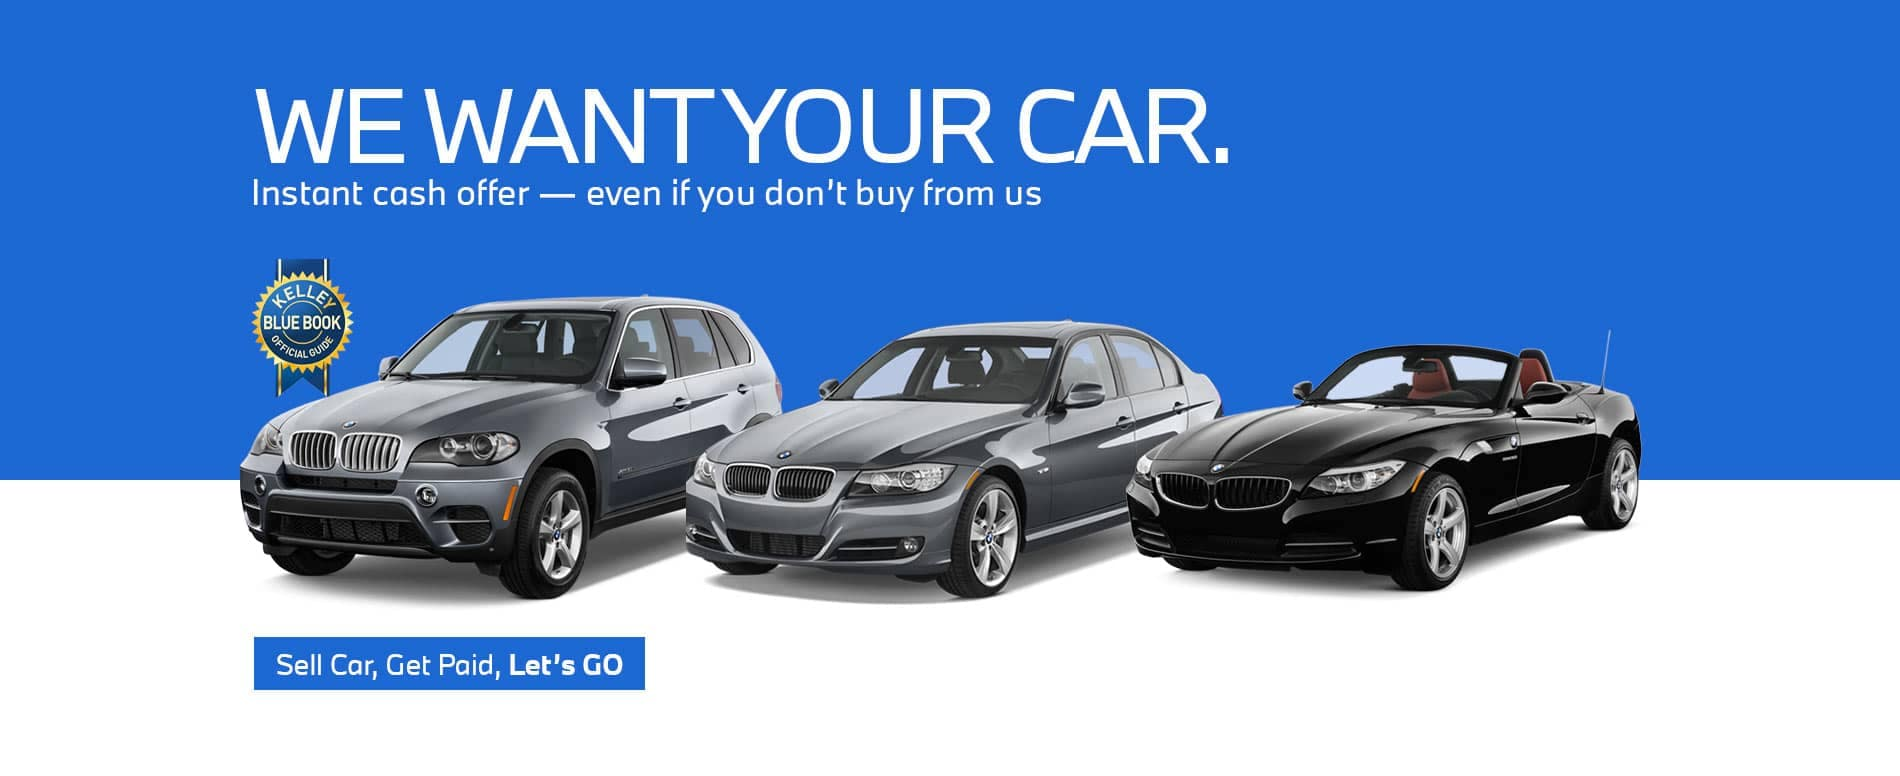 We-Want-Your-Car-BMW-Banner-BlueBG